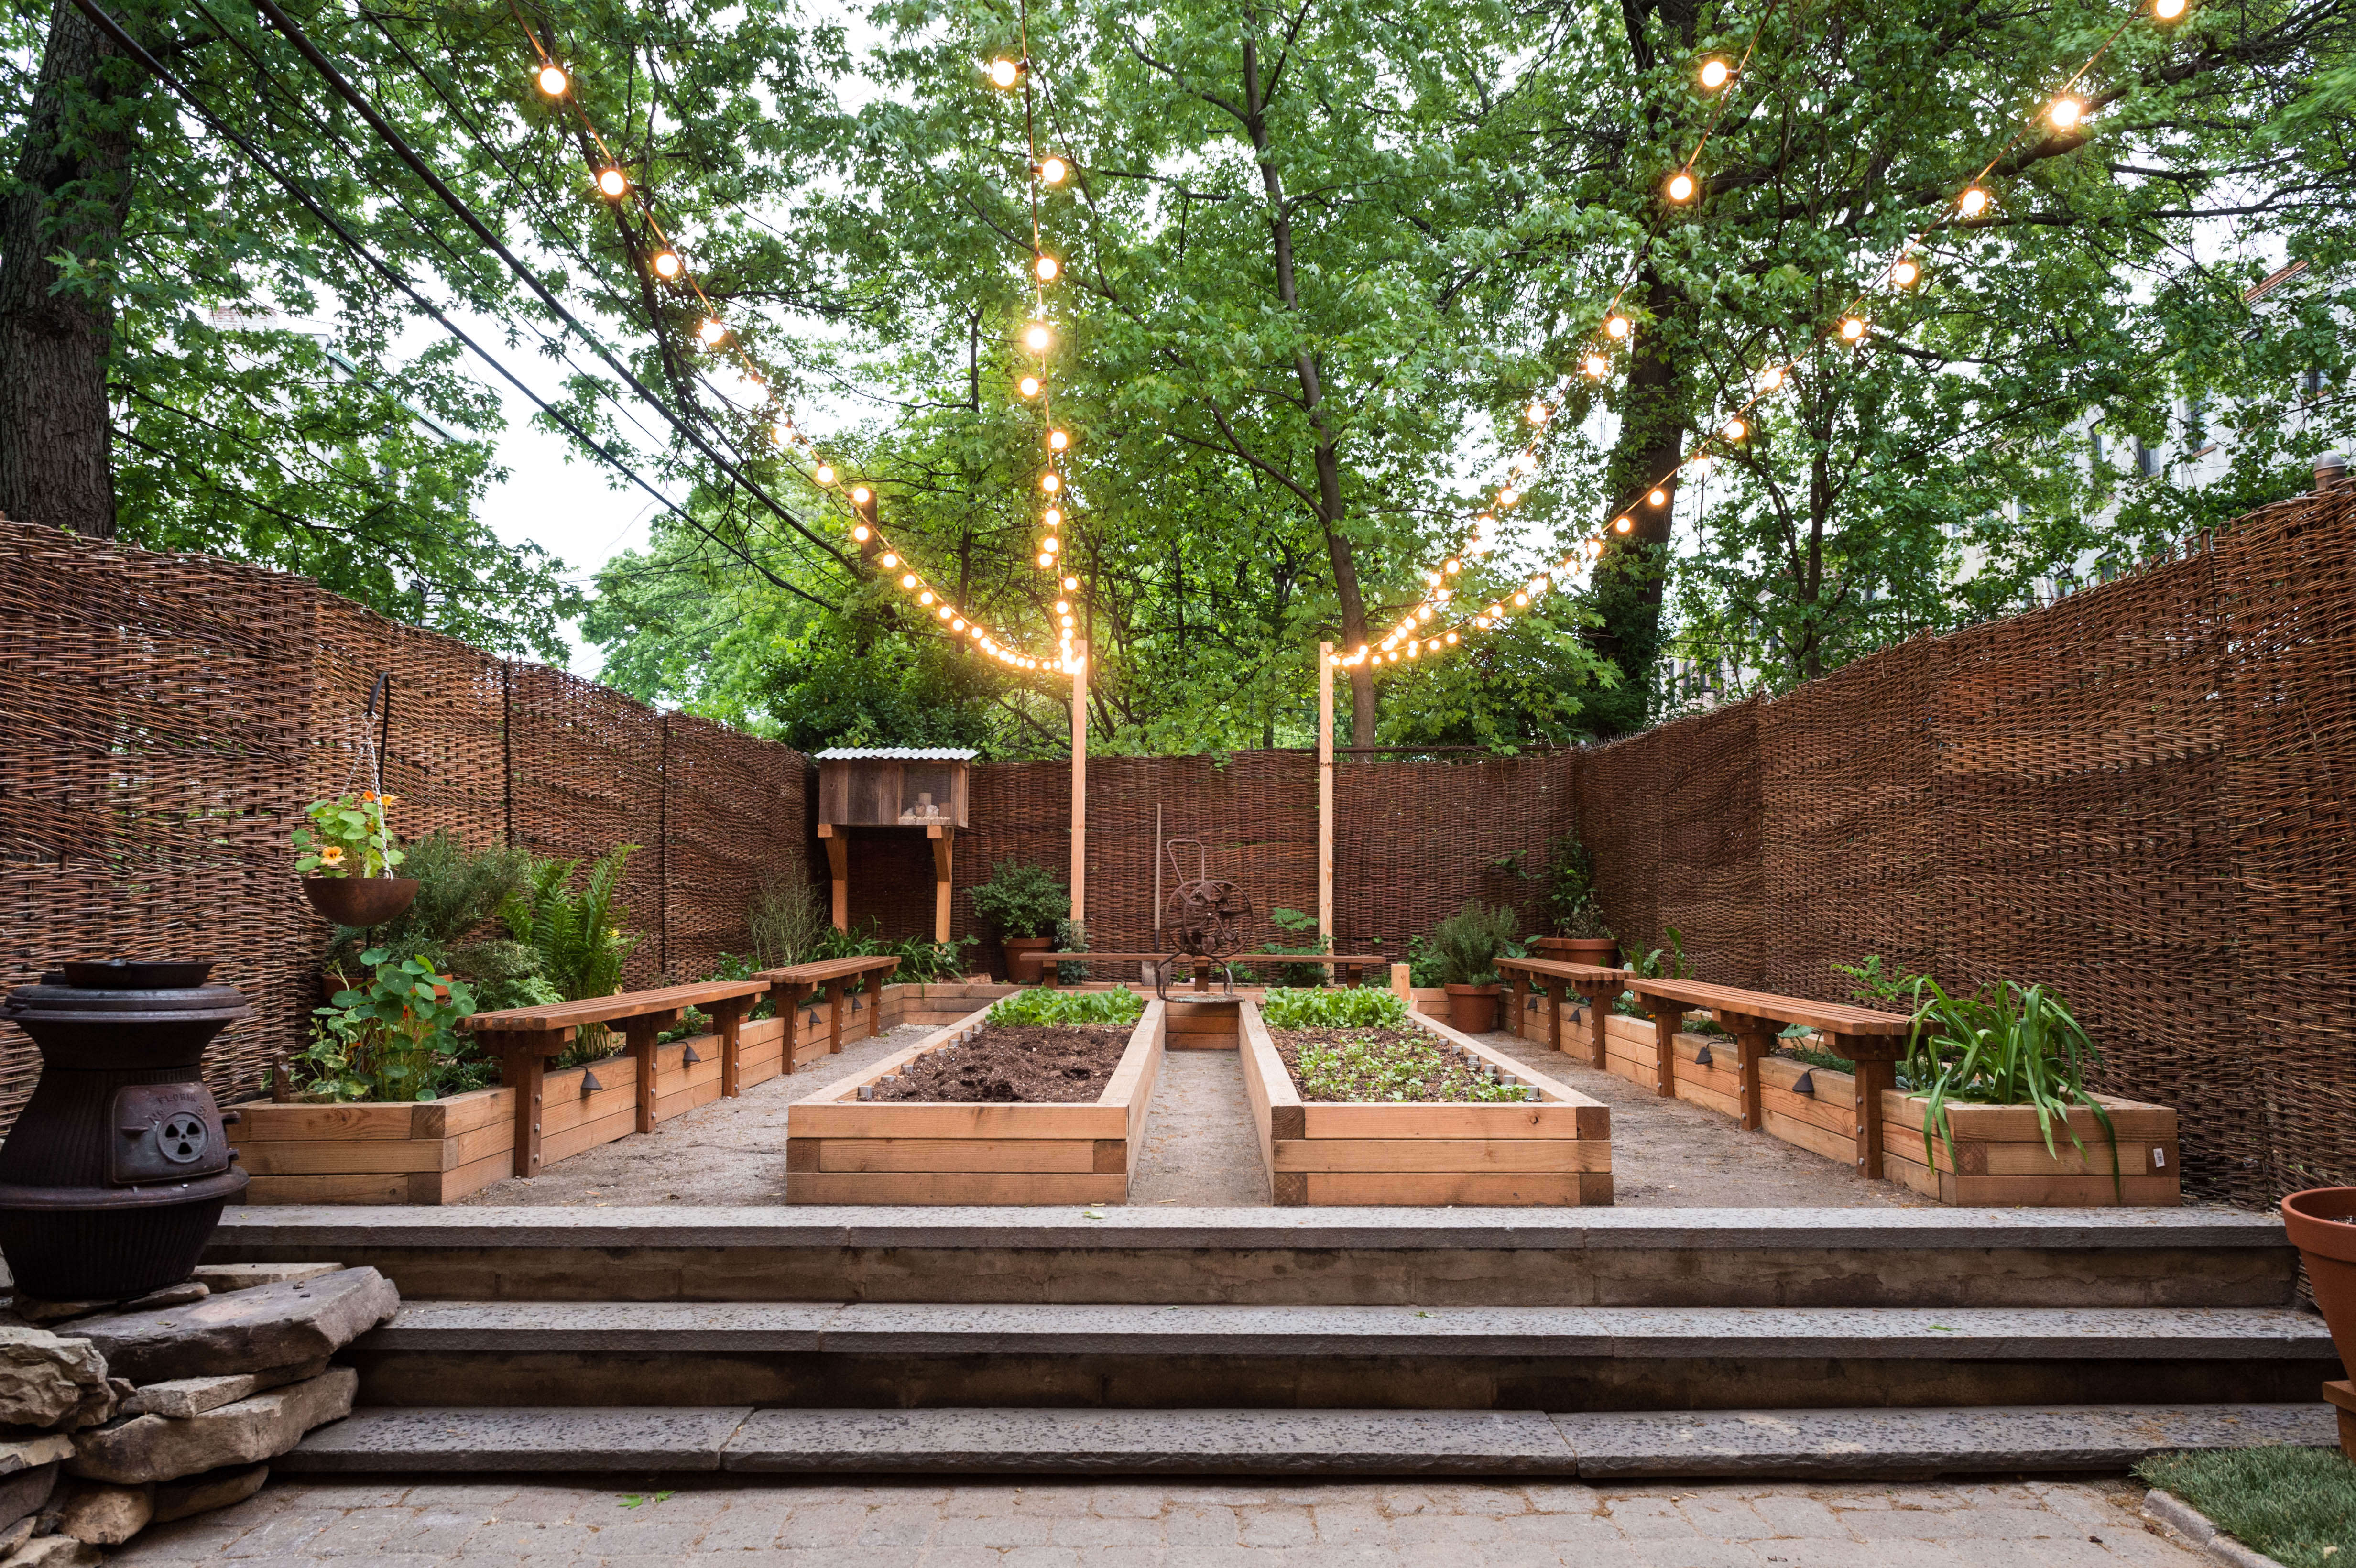 Above: Baxtrom And Rothman Built The Backyard Micro Farm Themselves. The  Garden Is Centered On A Horseshoe Shaped Pine Planter Surrounded By A  Perimeter Of ...